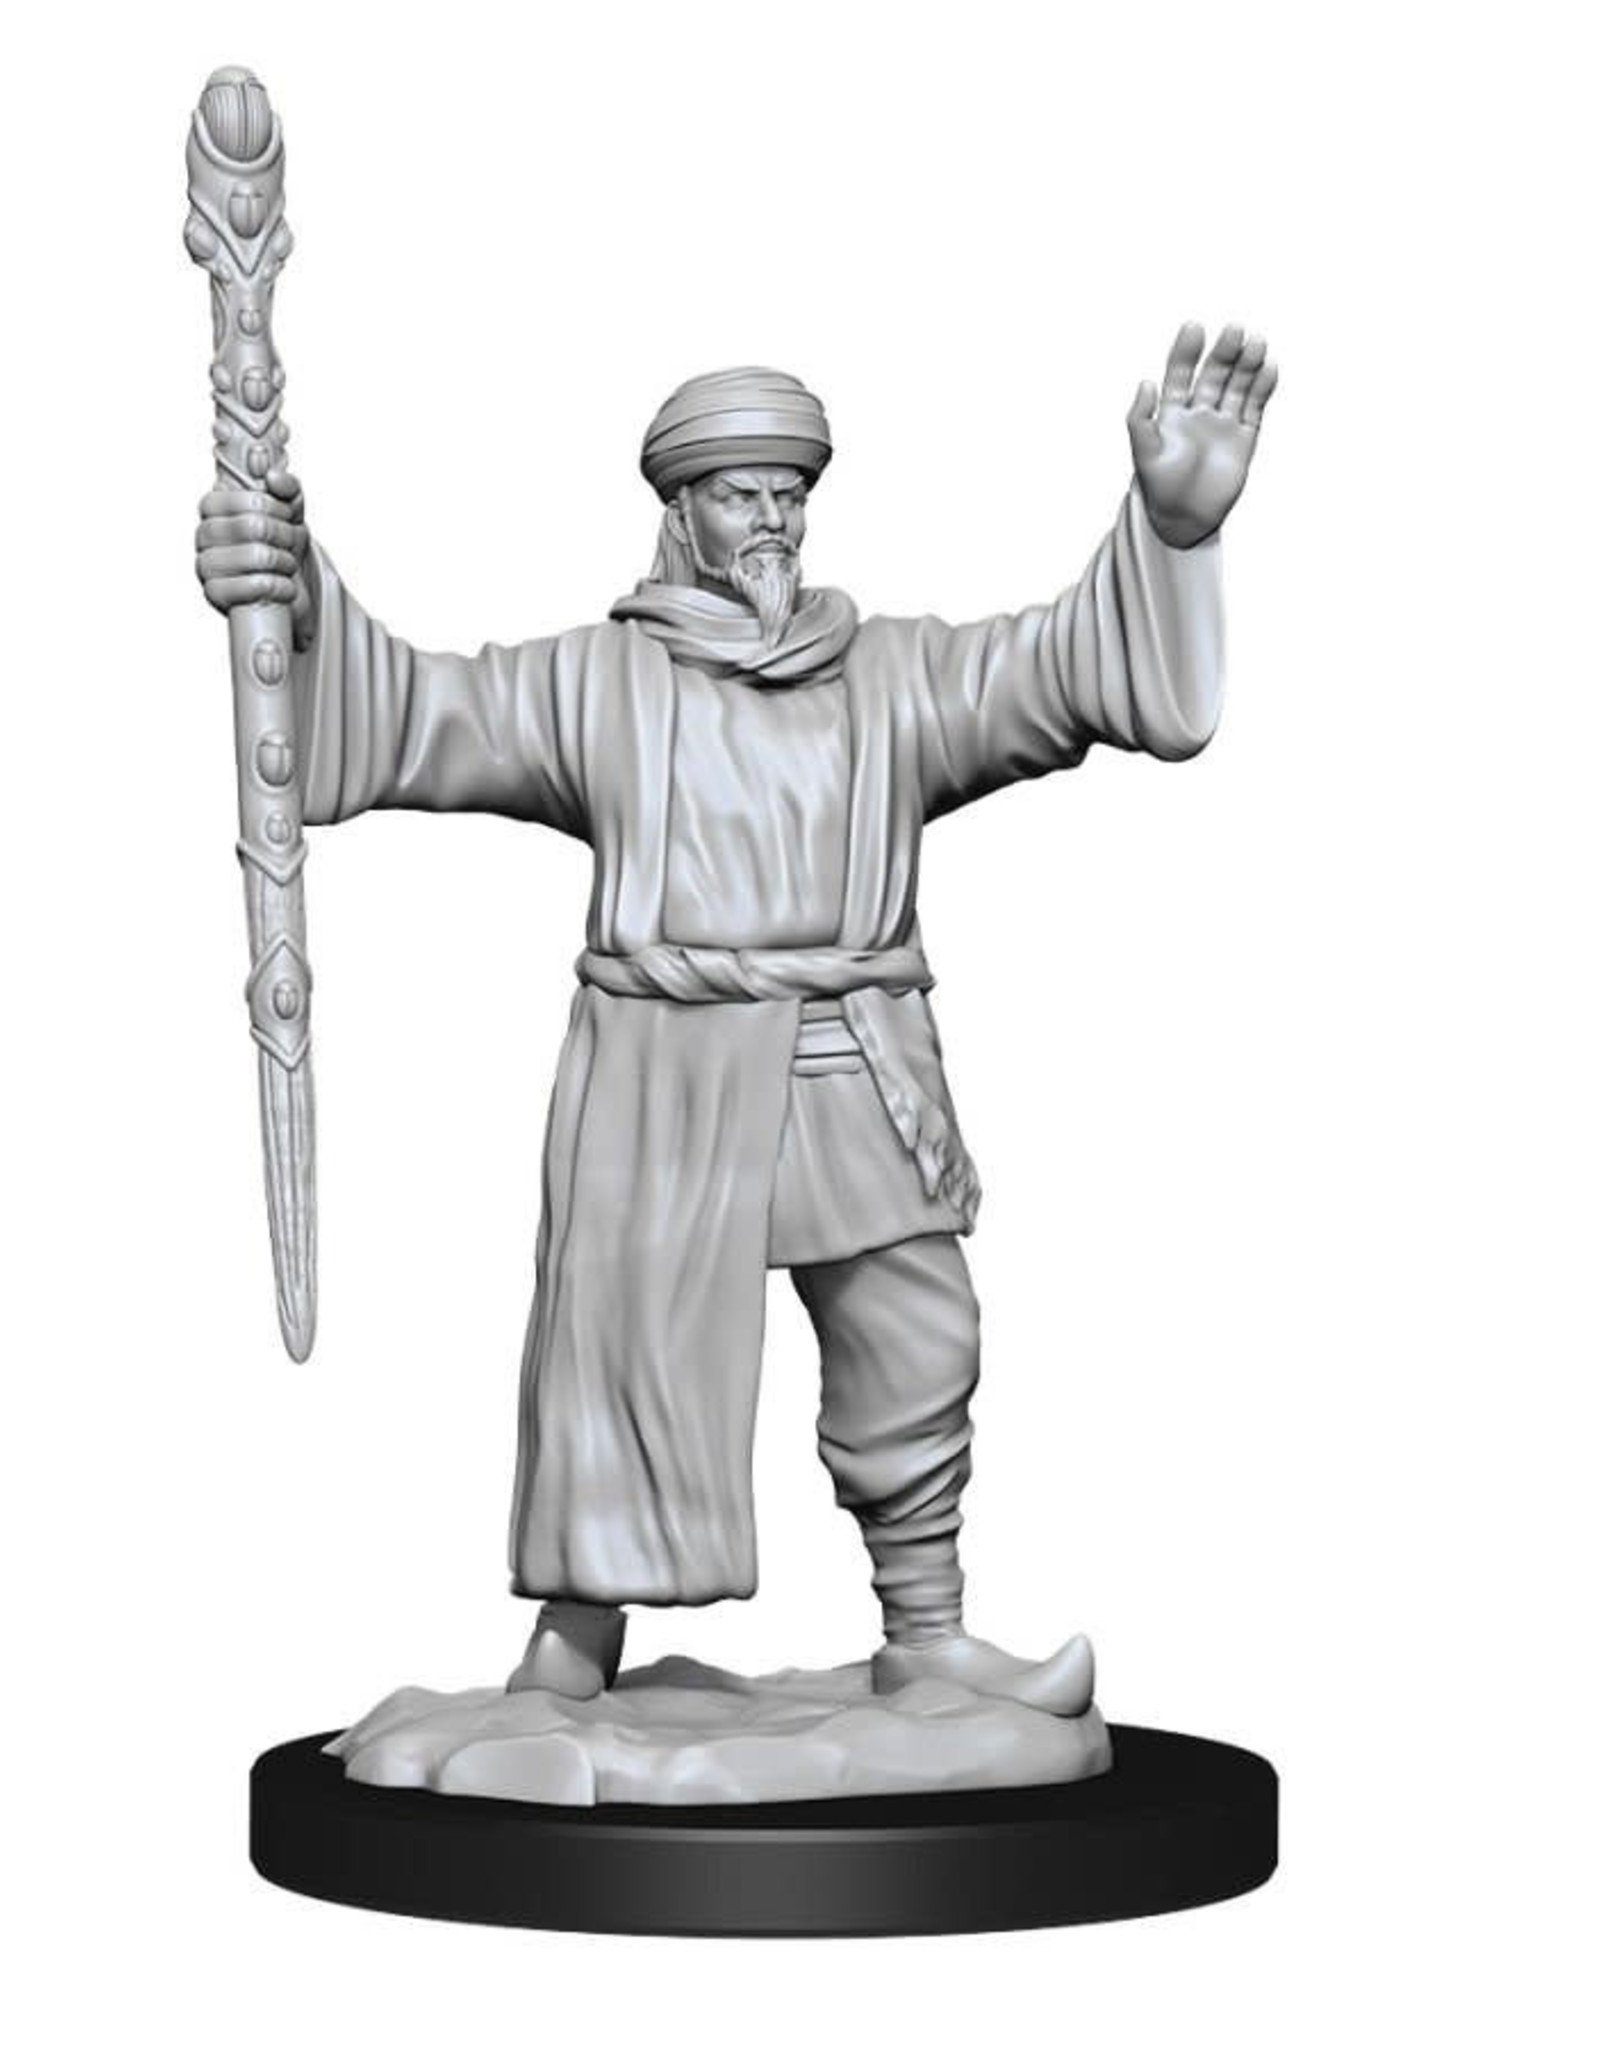 Wizkids Dungeons And Dragons Nolzur's Marvelous Miniatures: W13 Male Human Wizard